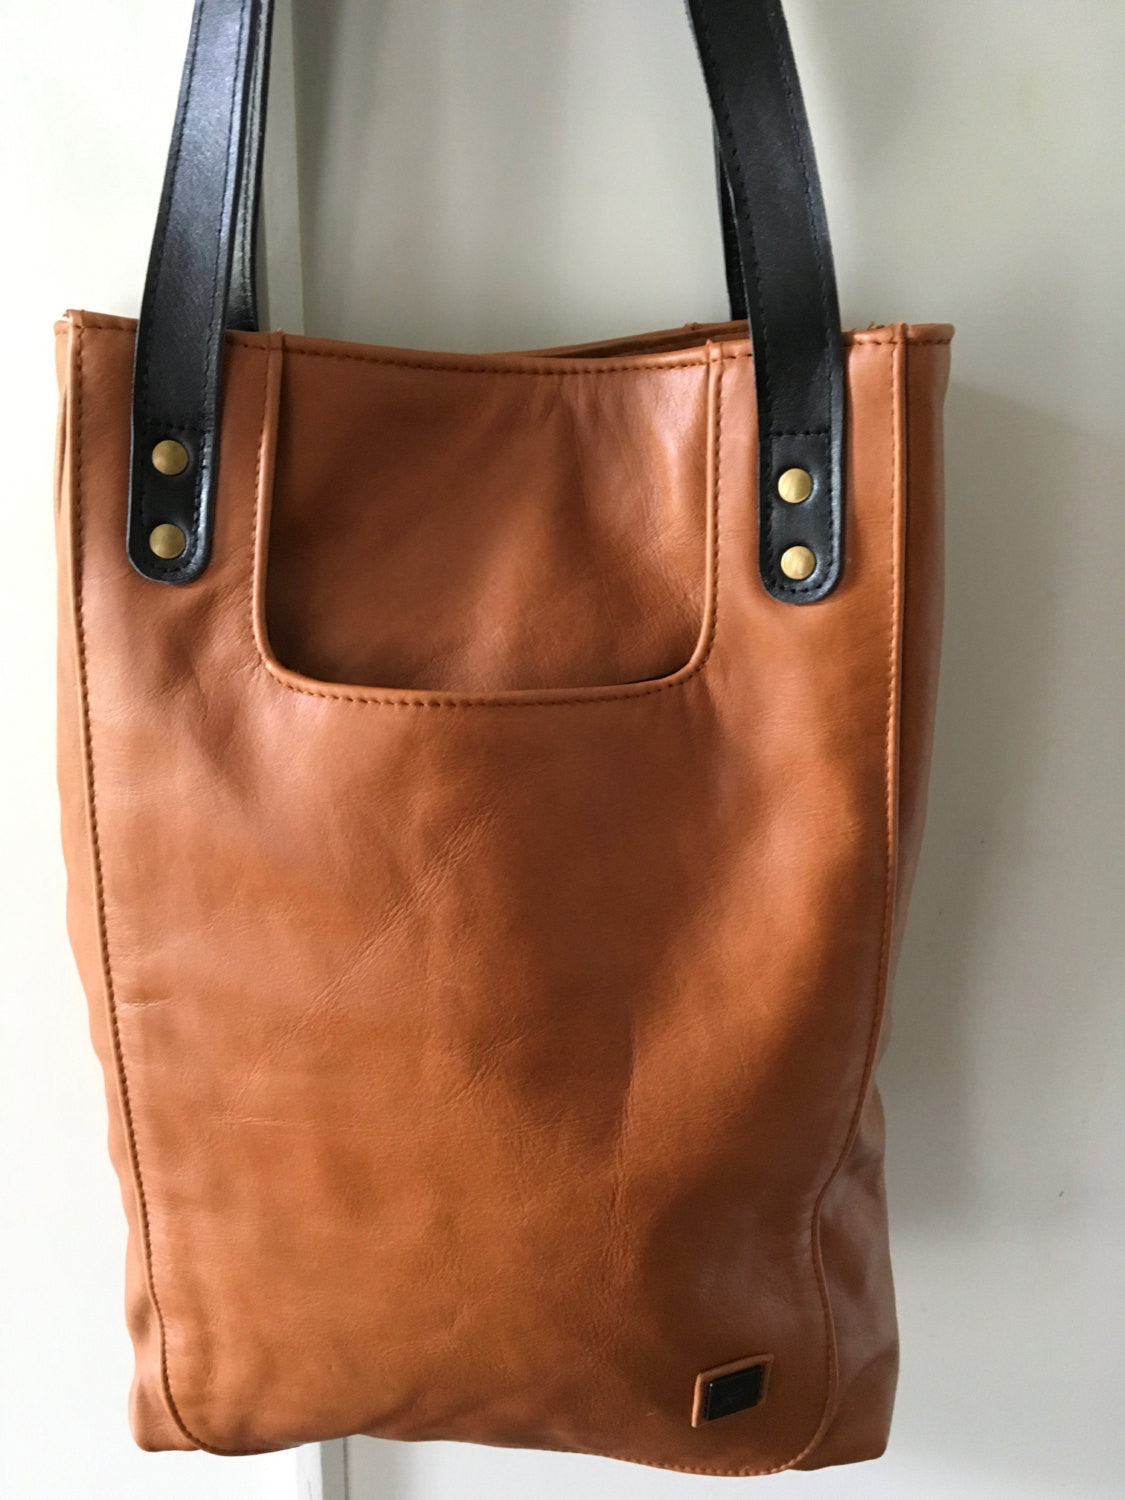 The Edge - Simple, stylish tan leather tote